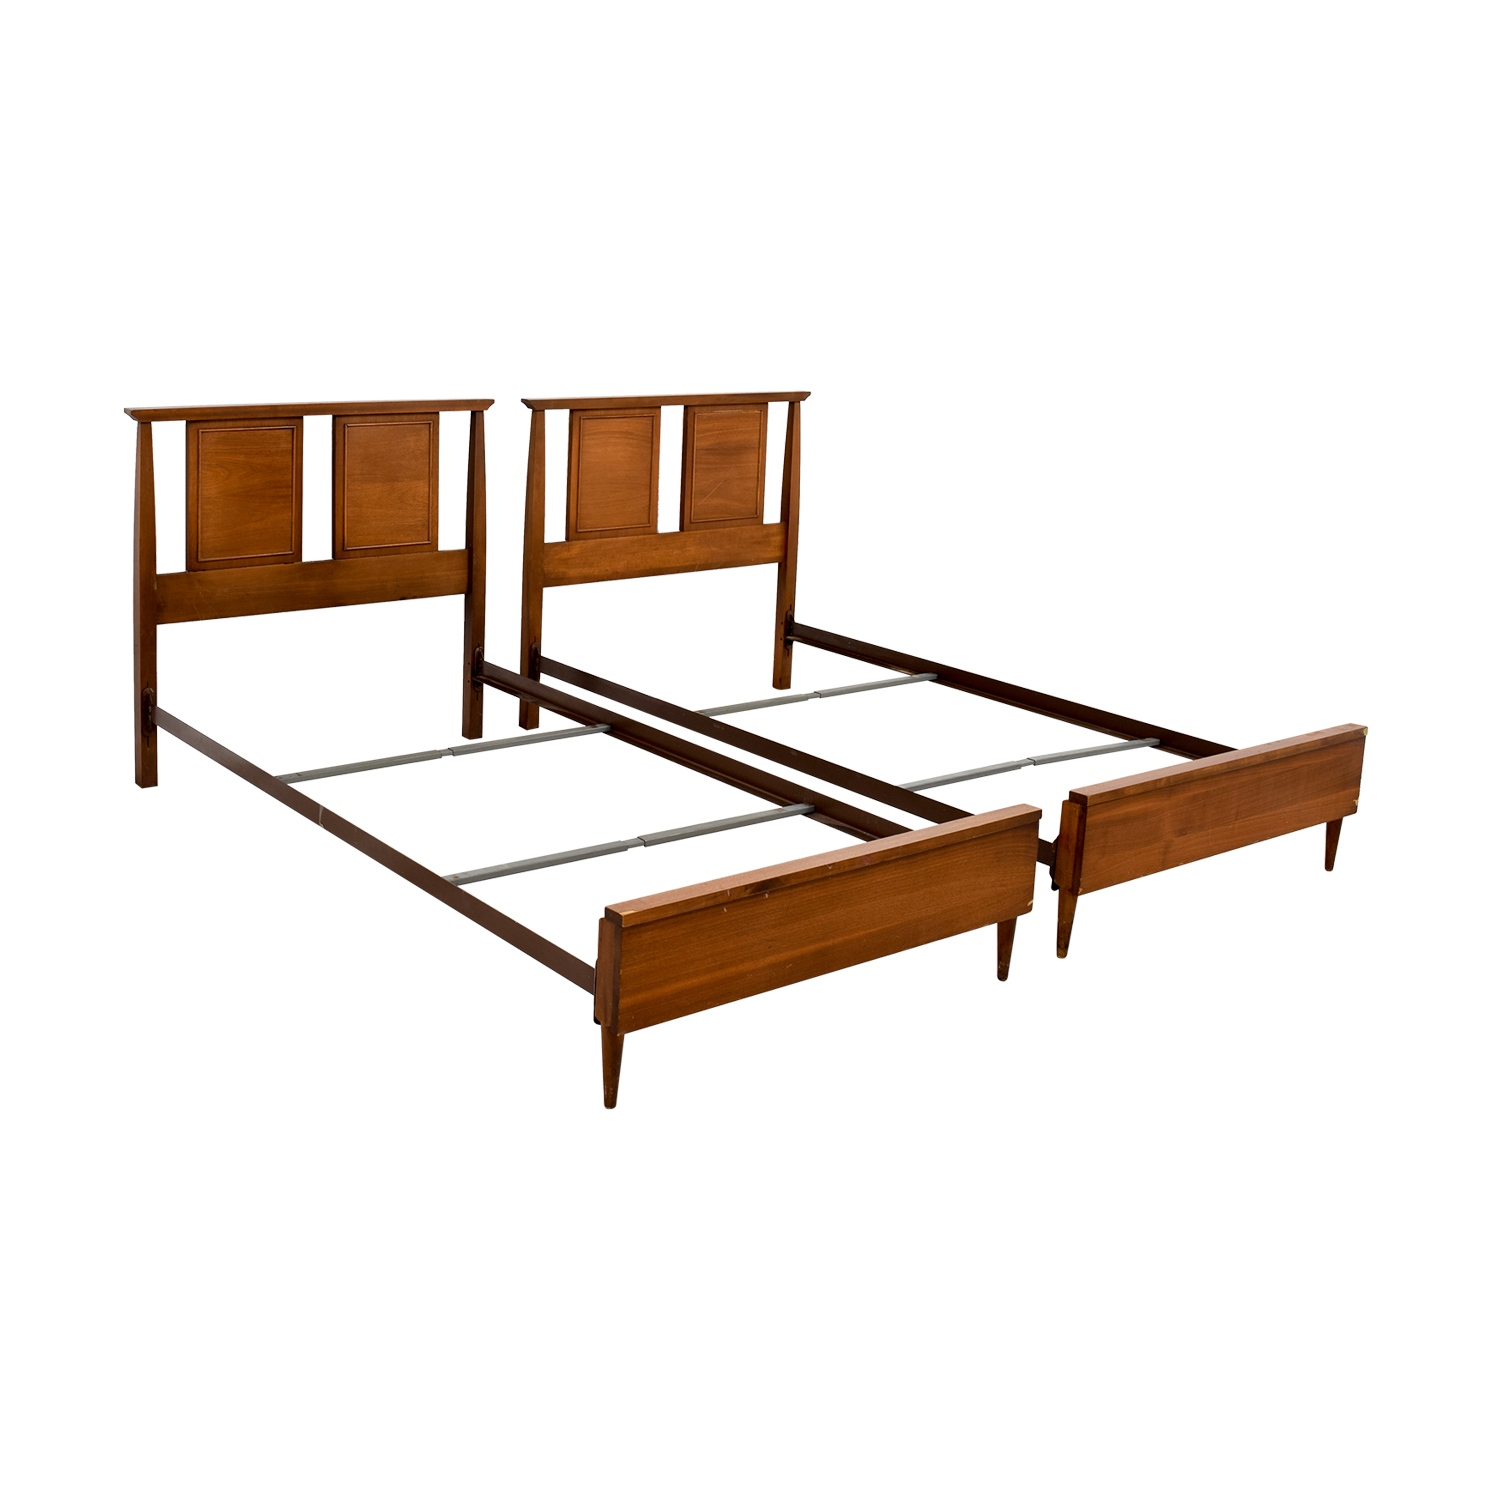 seamans seamans twin bed frames used